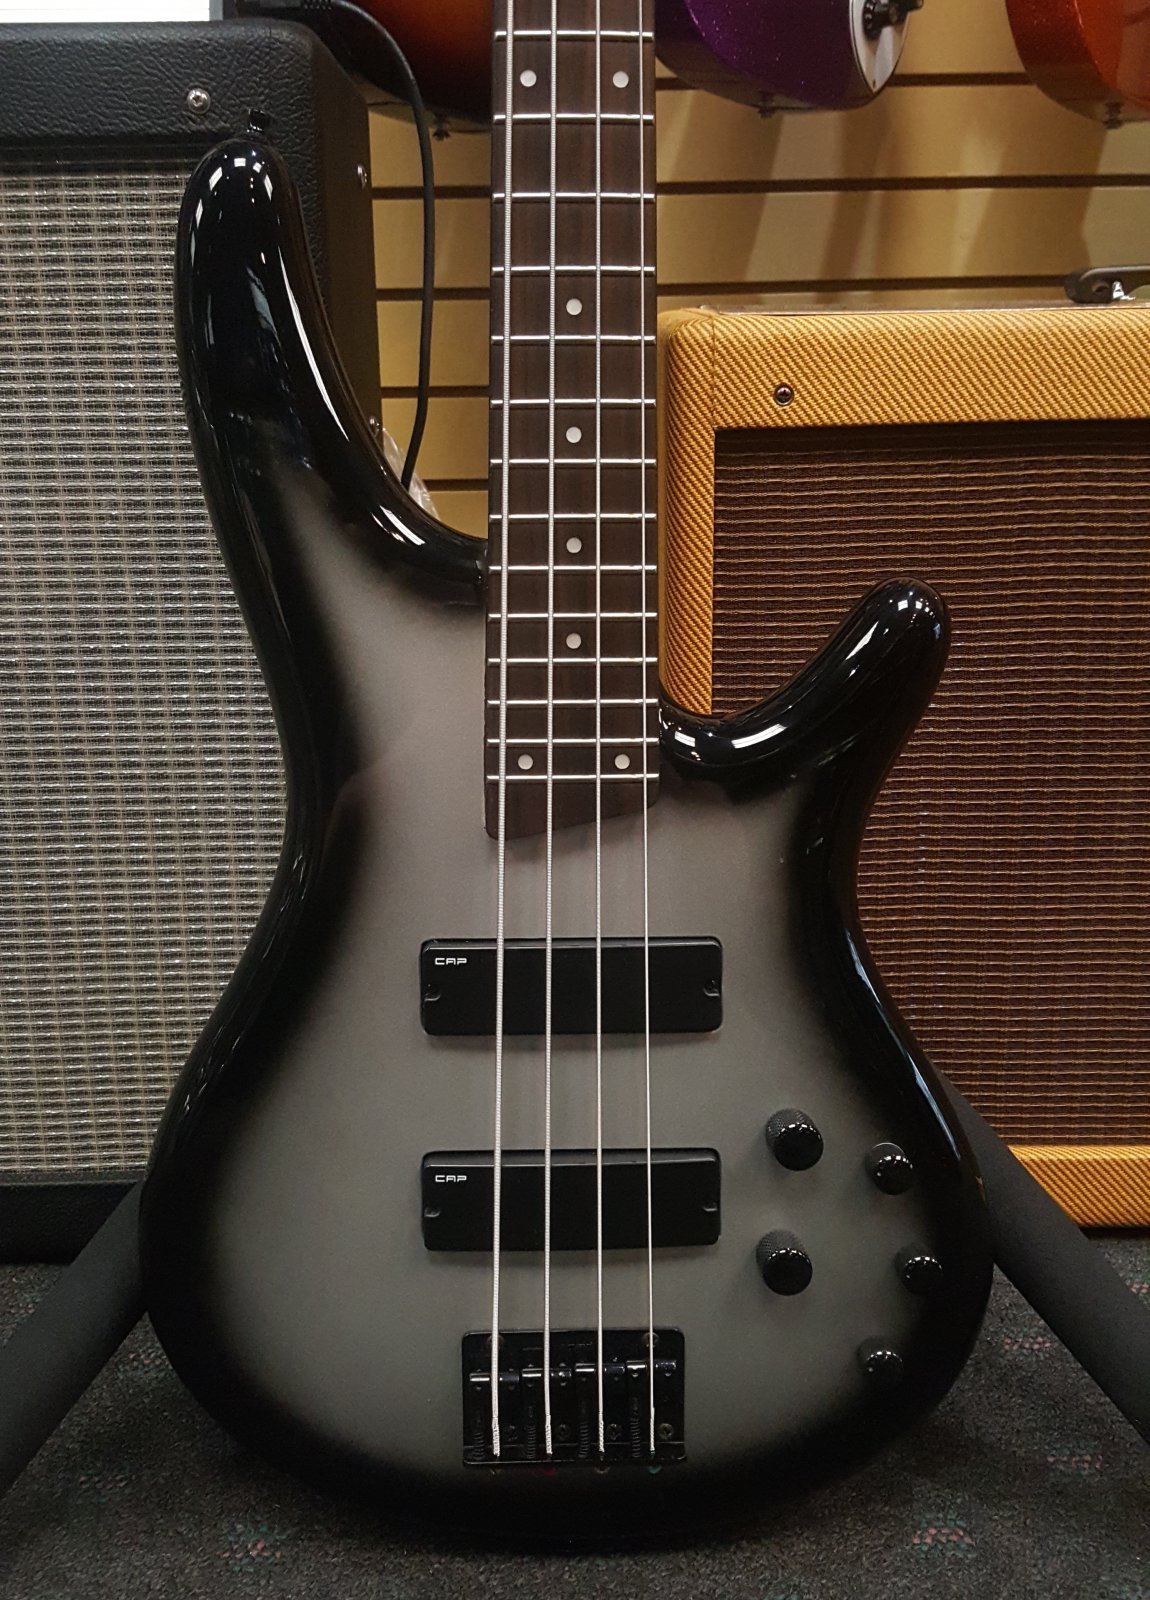 Used Ibanez SR300 Bass - Silverburst